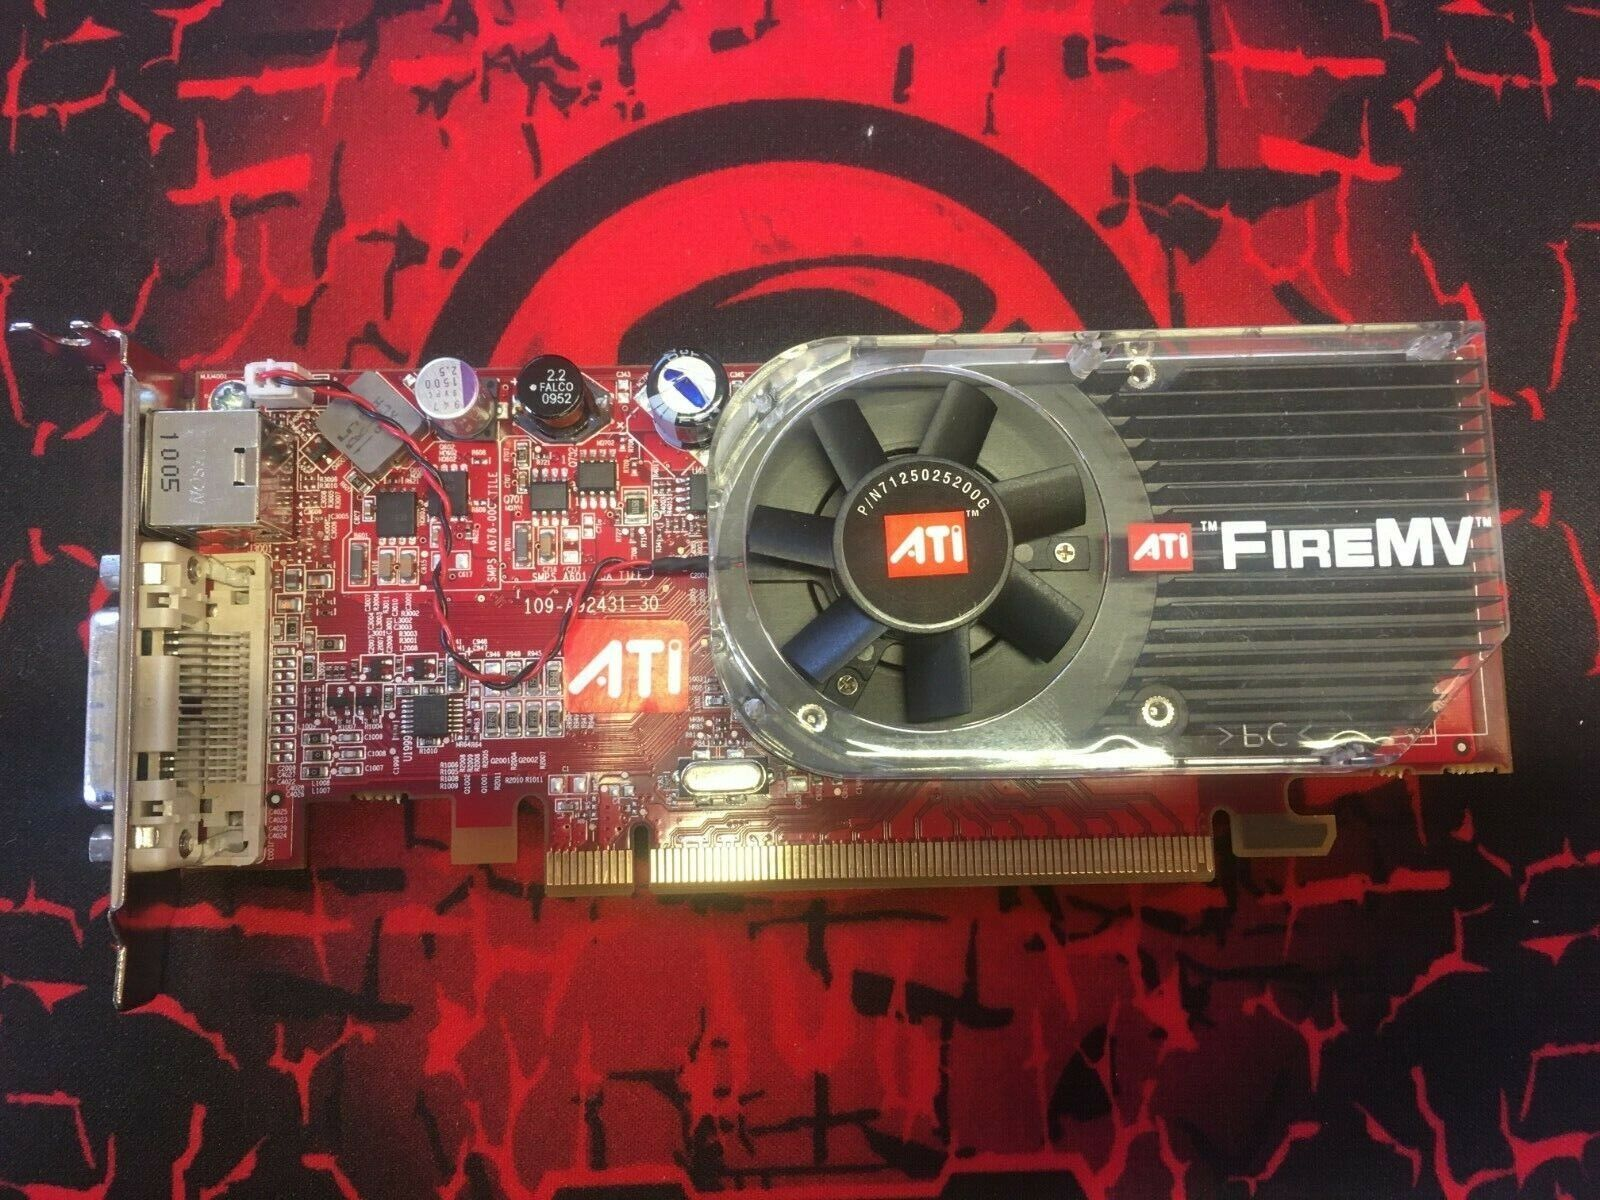 ATI FireMV Video Graphic Card 2250 PCle 256Mb 102A9240734 Low Profile